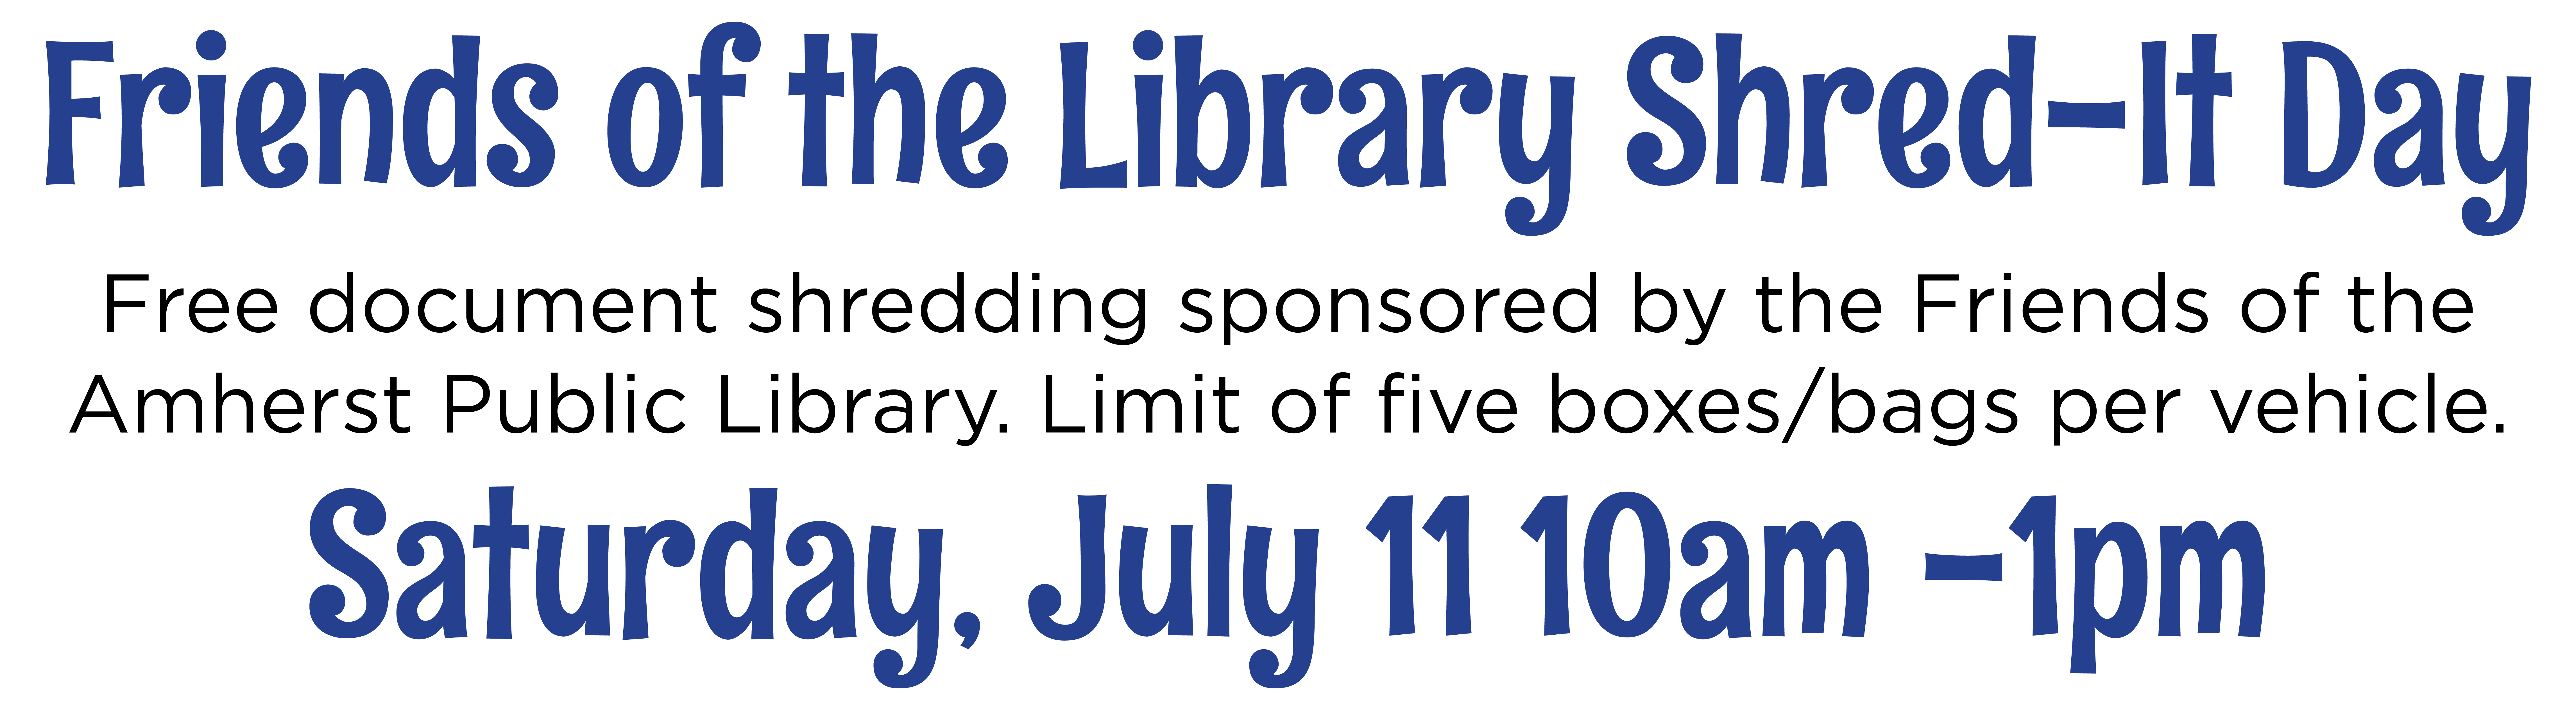 Friends of the Library Shred-it Day